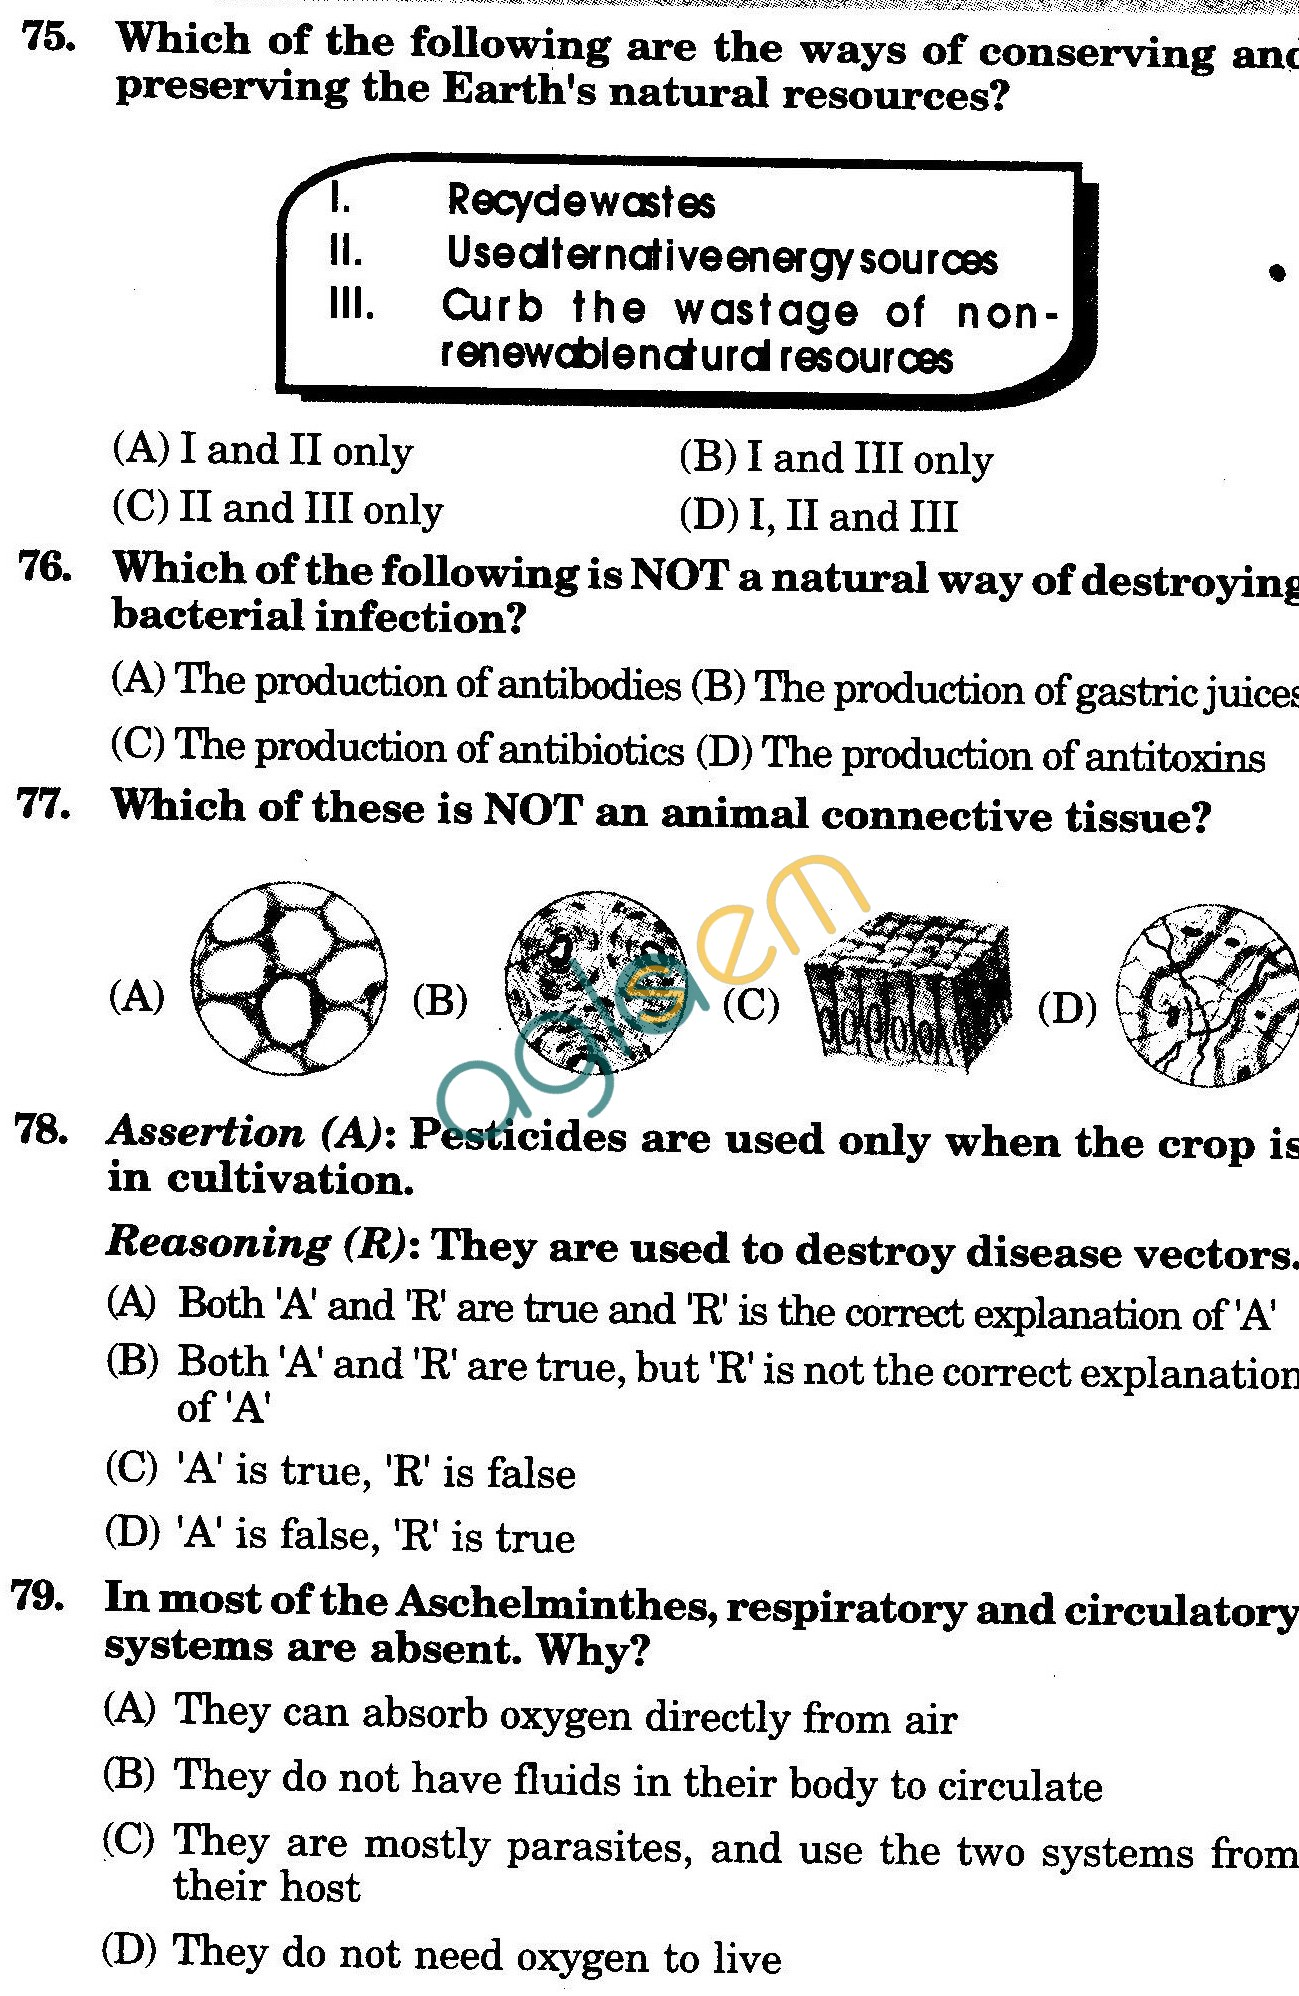 NSTSE 2010: Class IX Question Paper with Answers - Biology